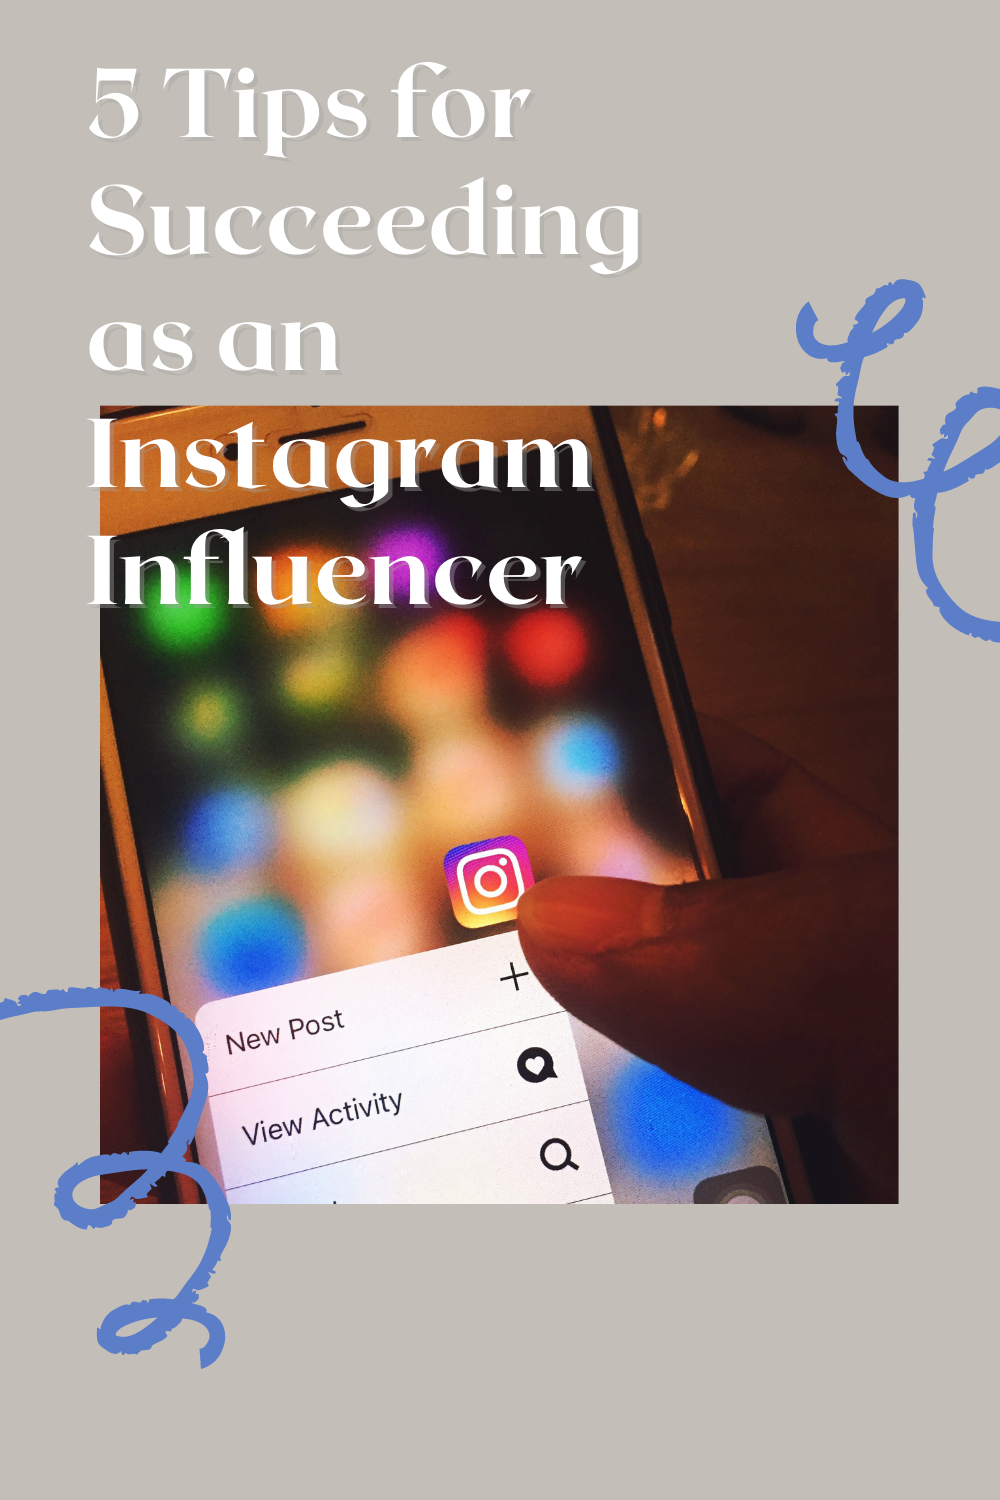 Instagram on your phone